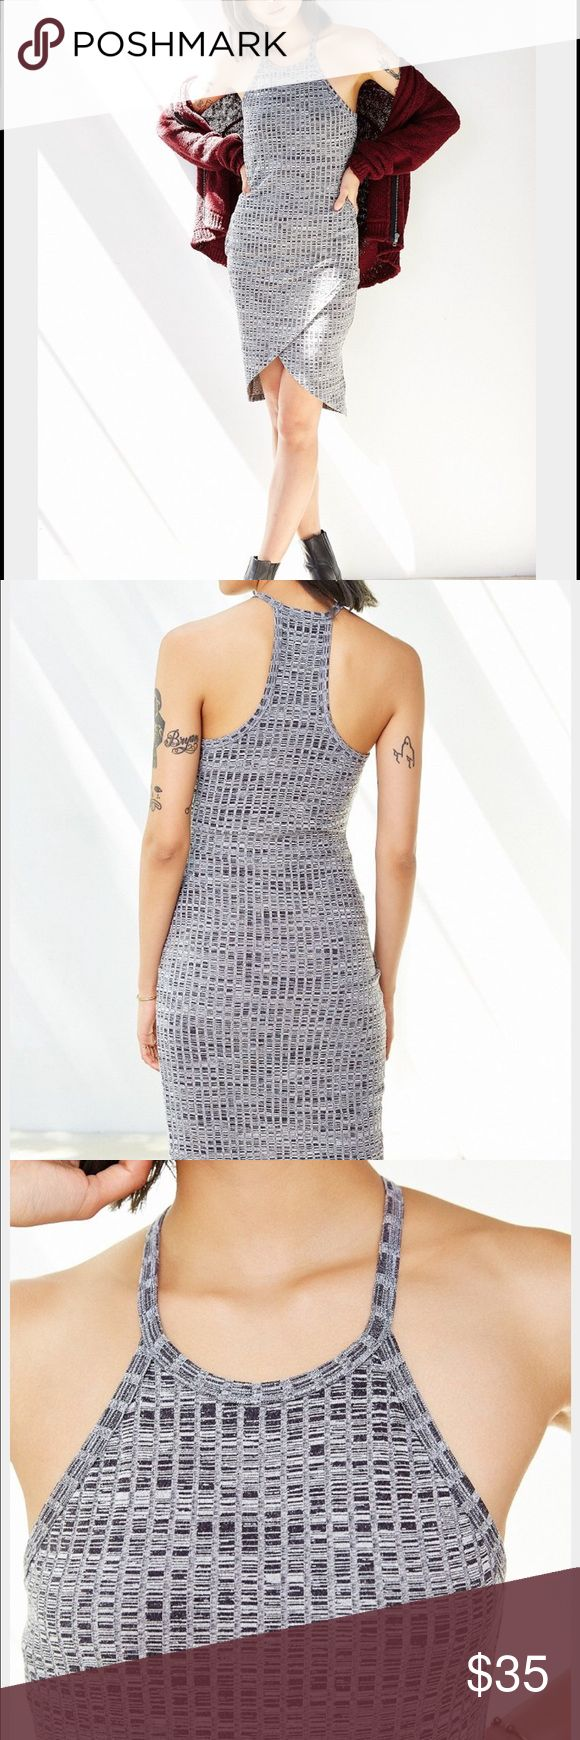 New Urban Outfitters Silence + Noise Tulip Dress M New WiTh Tags. Perfect for spring. Summer. Pair it with a trendy leather jacket and white sneakers for a complete look. Urban Outfitters Dresses